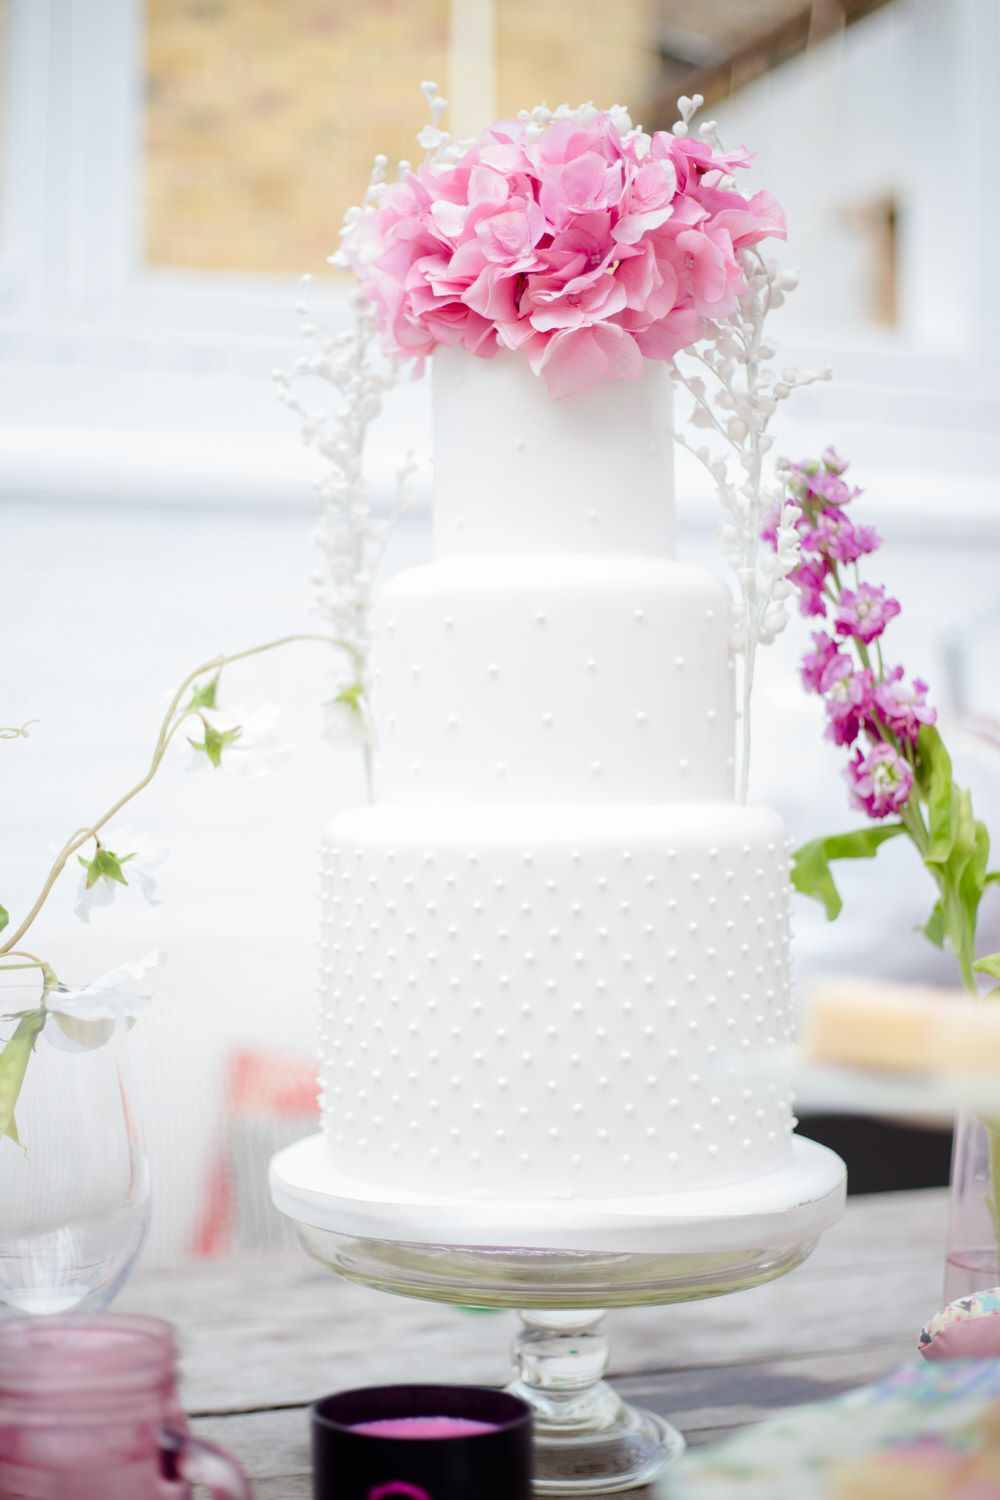 Three Tier White Wedding Cake topped with Pink Hydrangea Flower | Made To Order Bridesmaids Dresses From Award Winning Bridesmaid Dress Retailer Maids To Measure | Image by Claire Graham | http://www.rockmywedding.co.uk/maids-to-measure-sample-sale-august-2015/